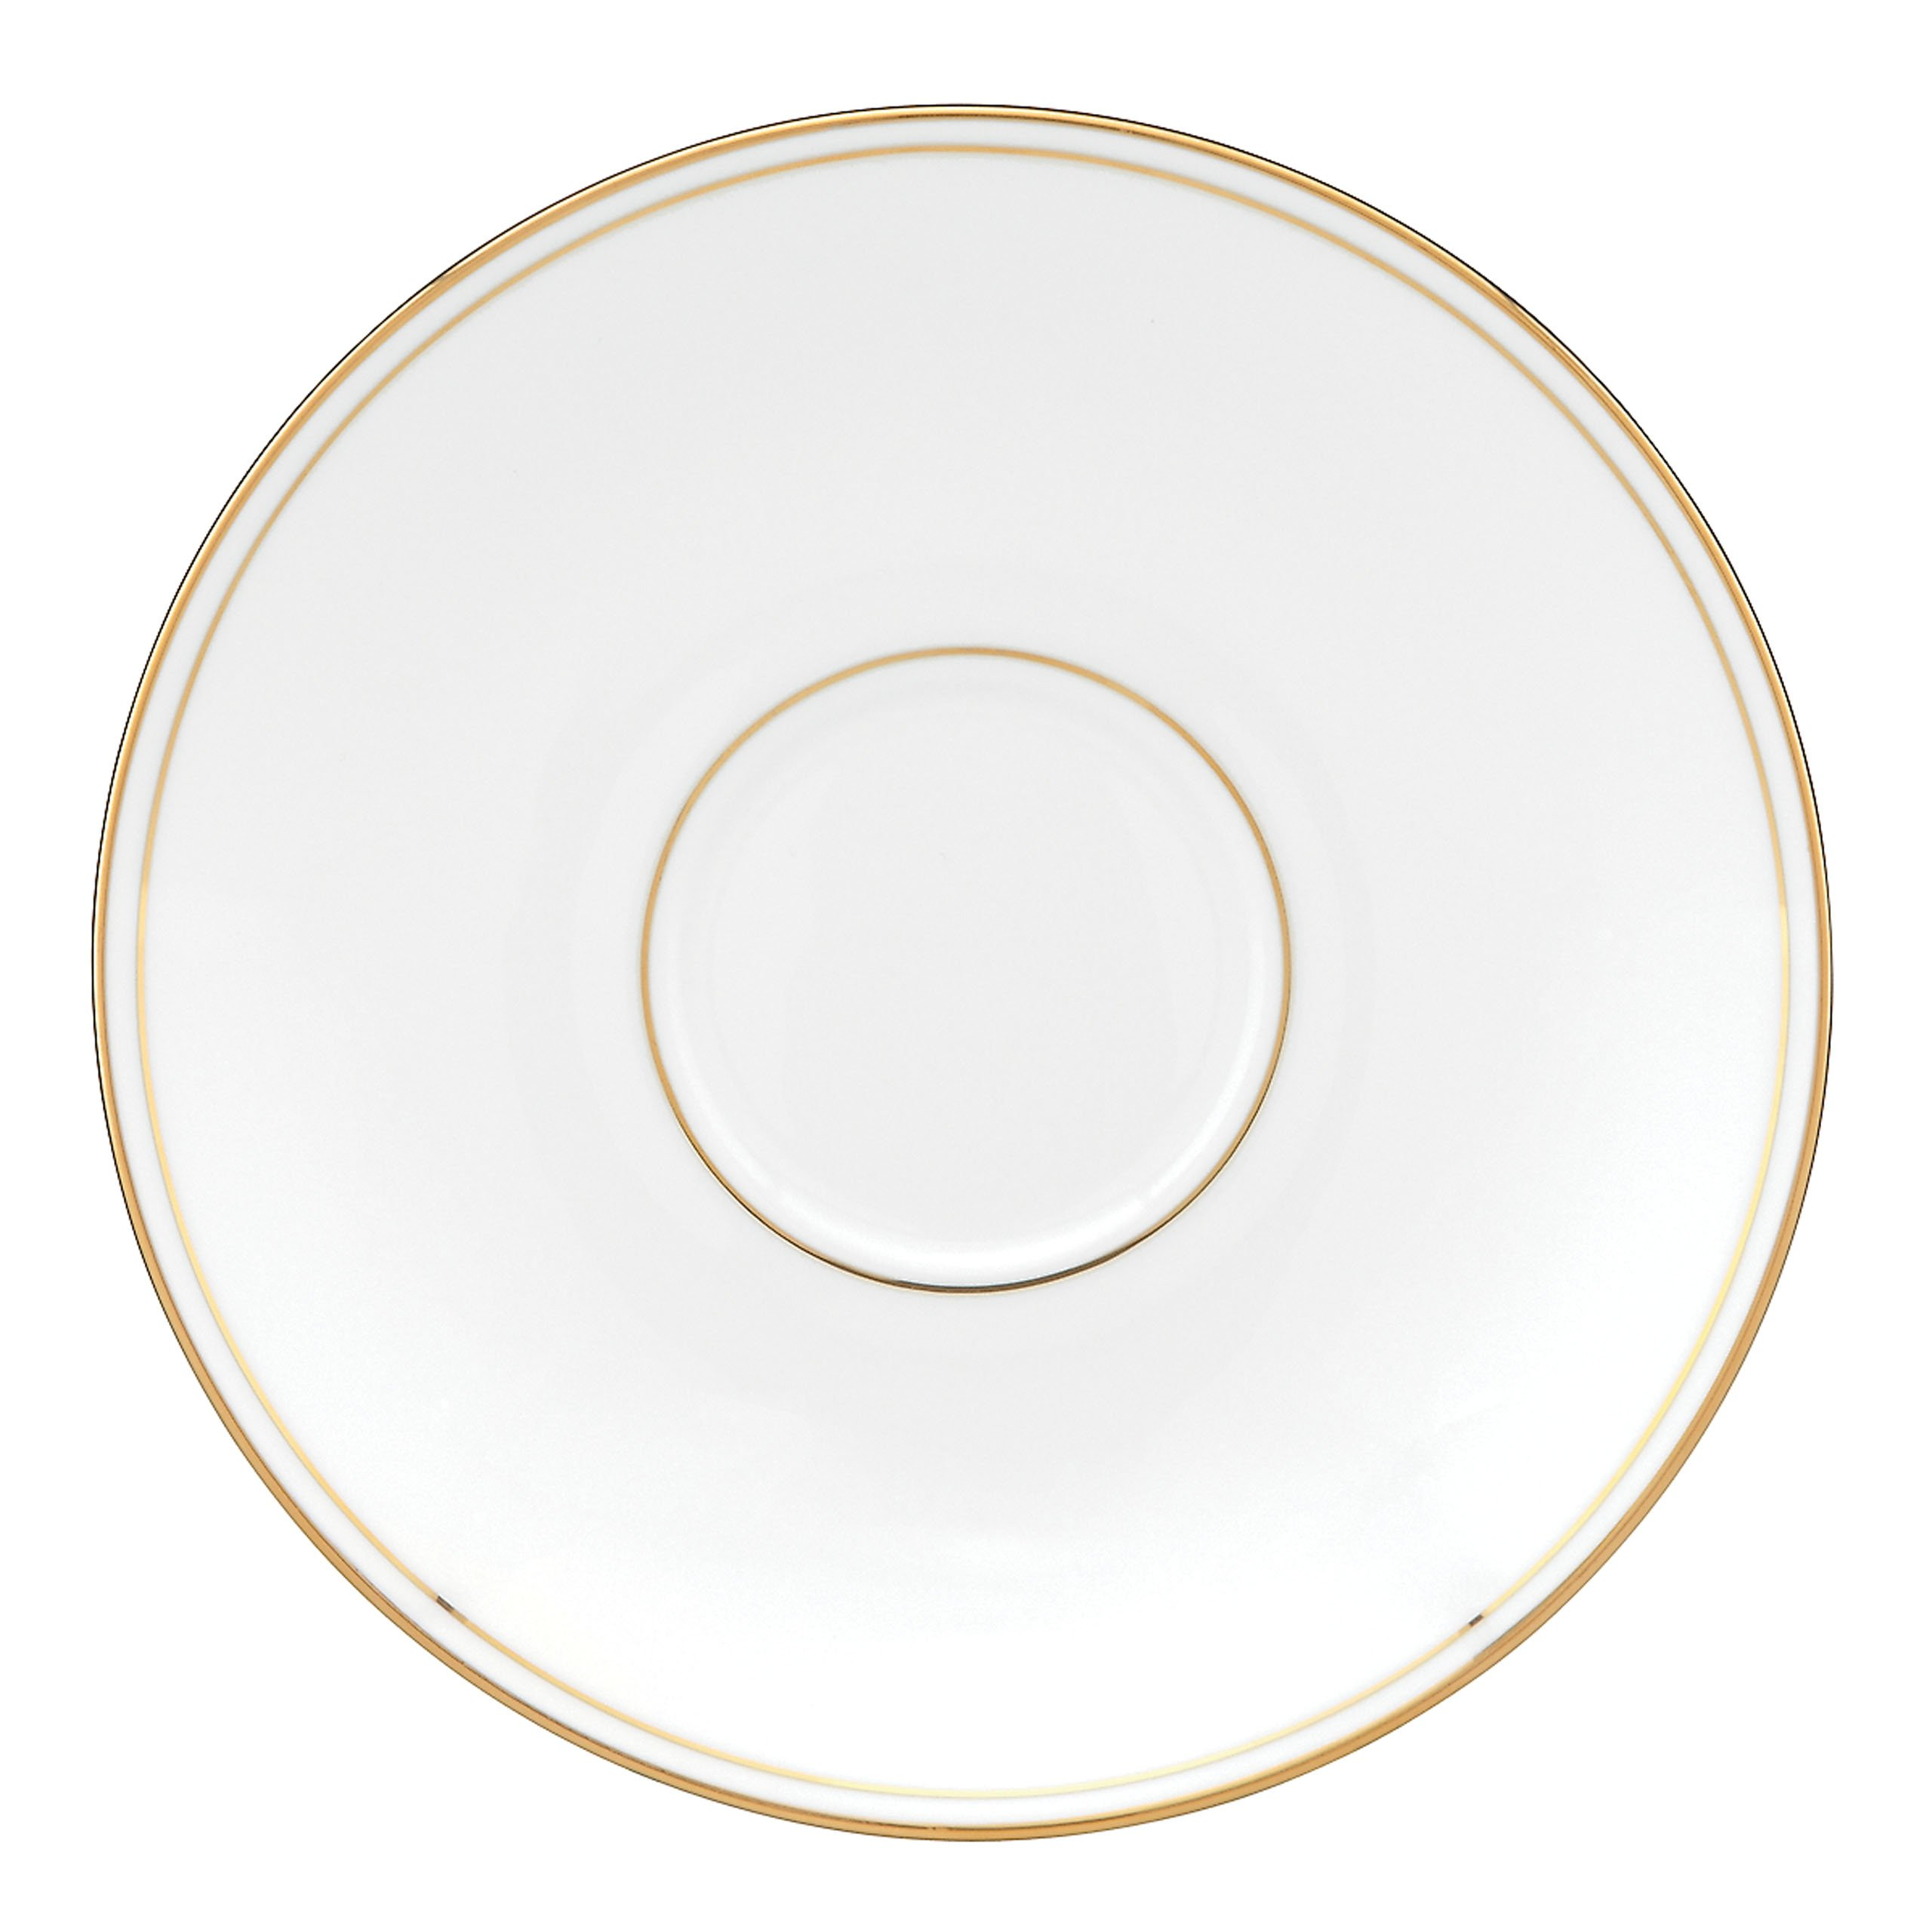 Lenox Federal Gold Bone China Saucer